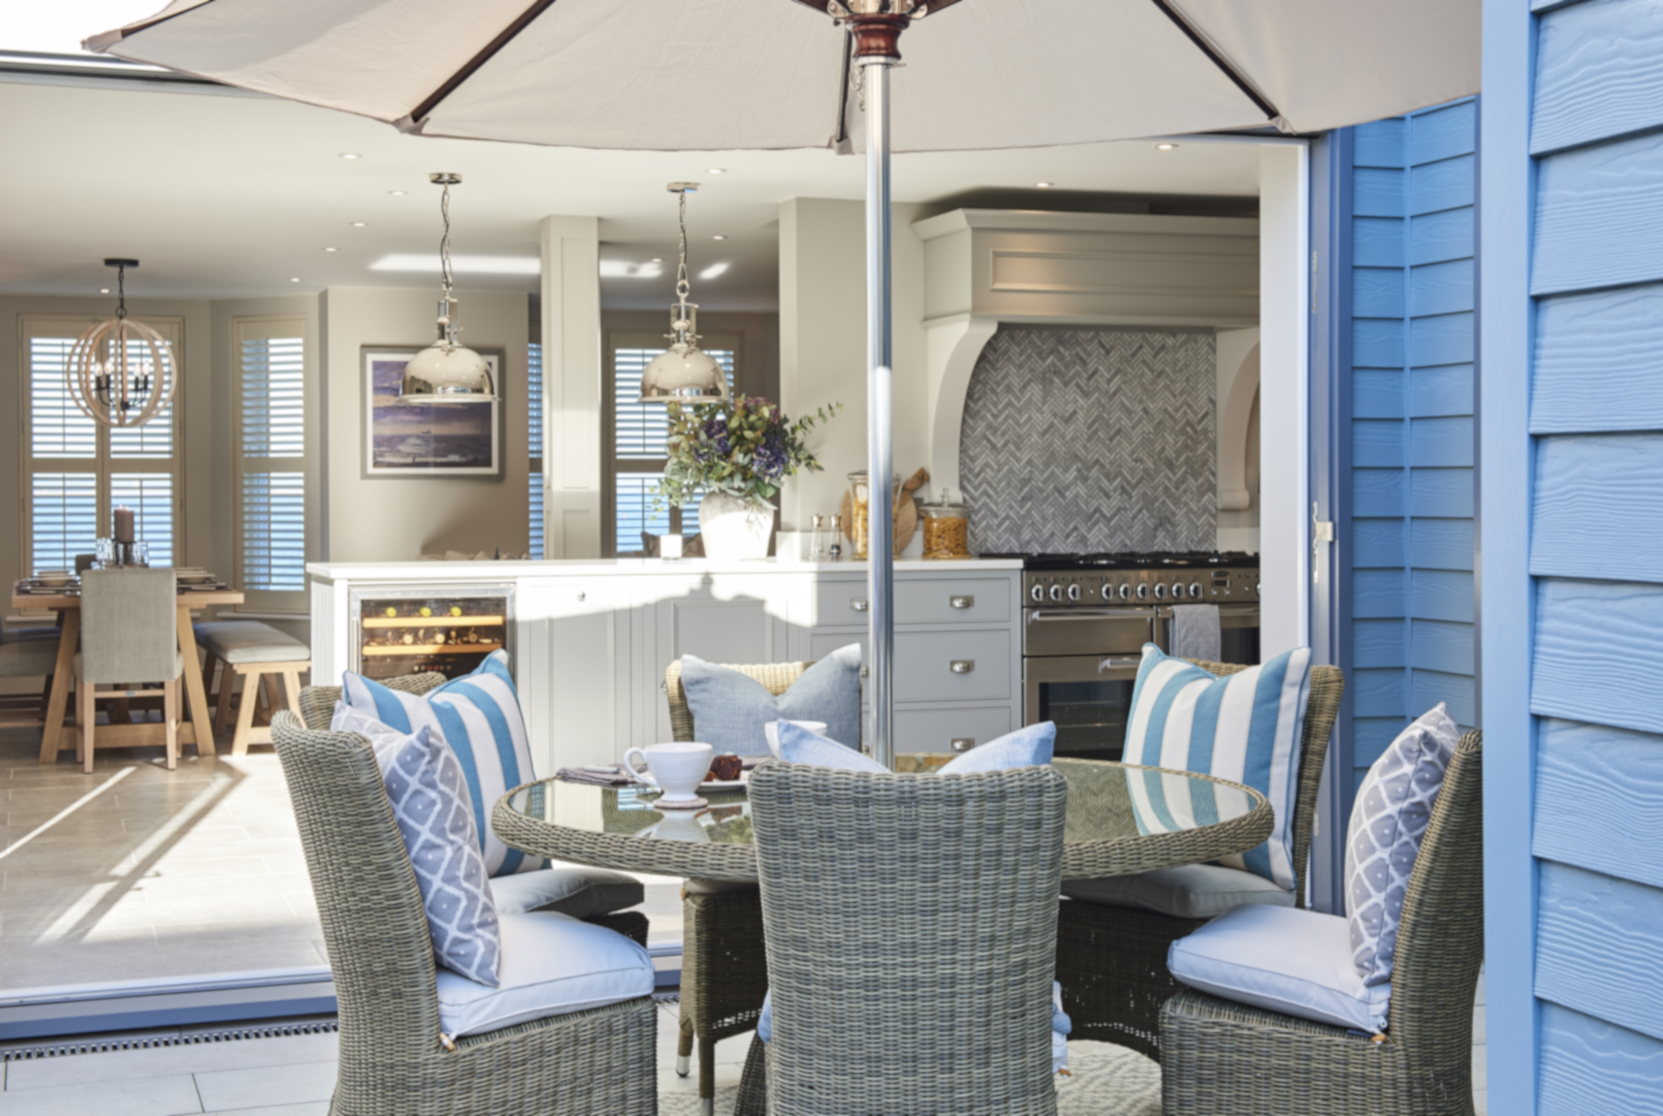 Courtyard dining & bifold doors - Interior design